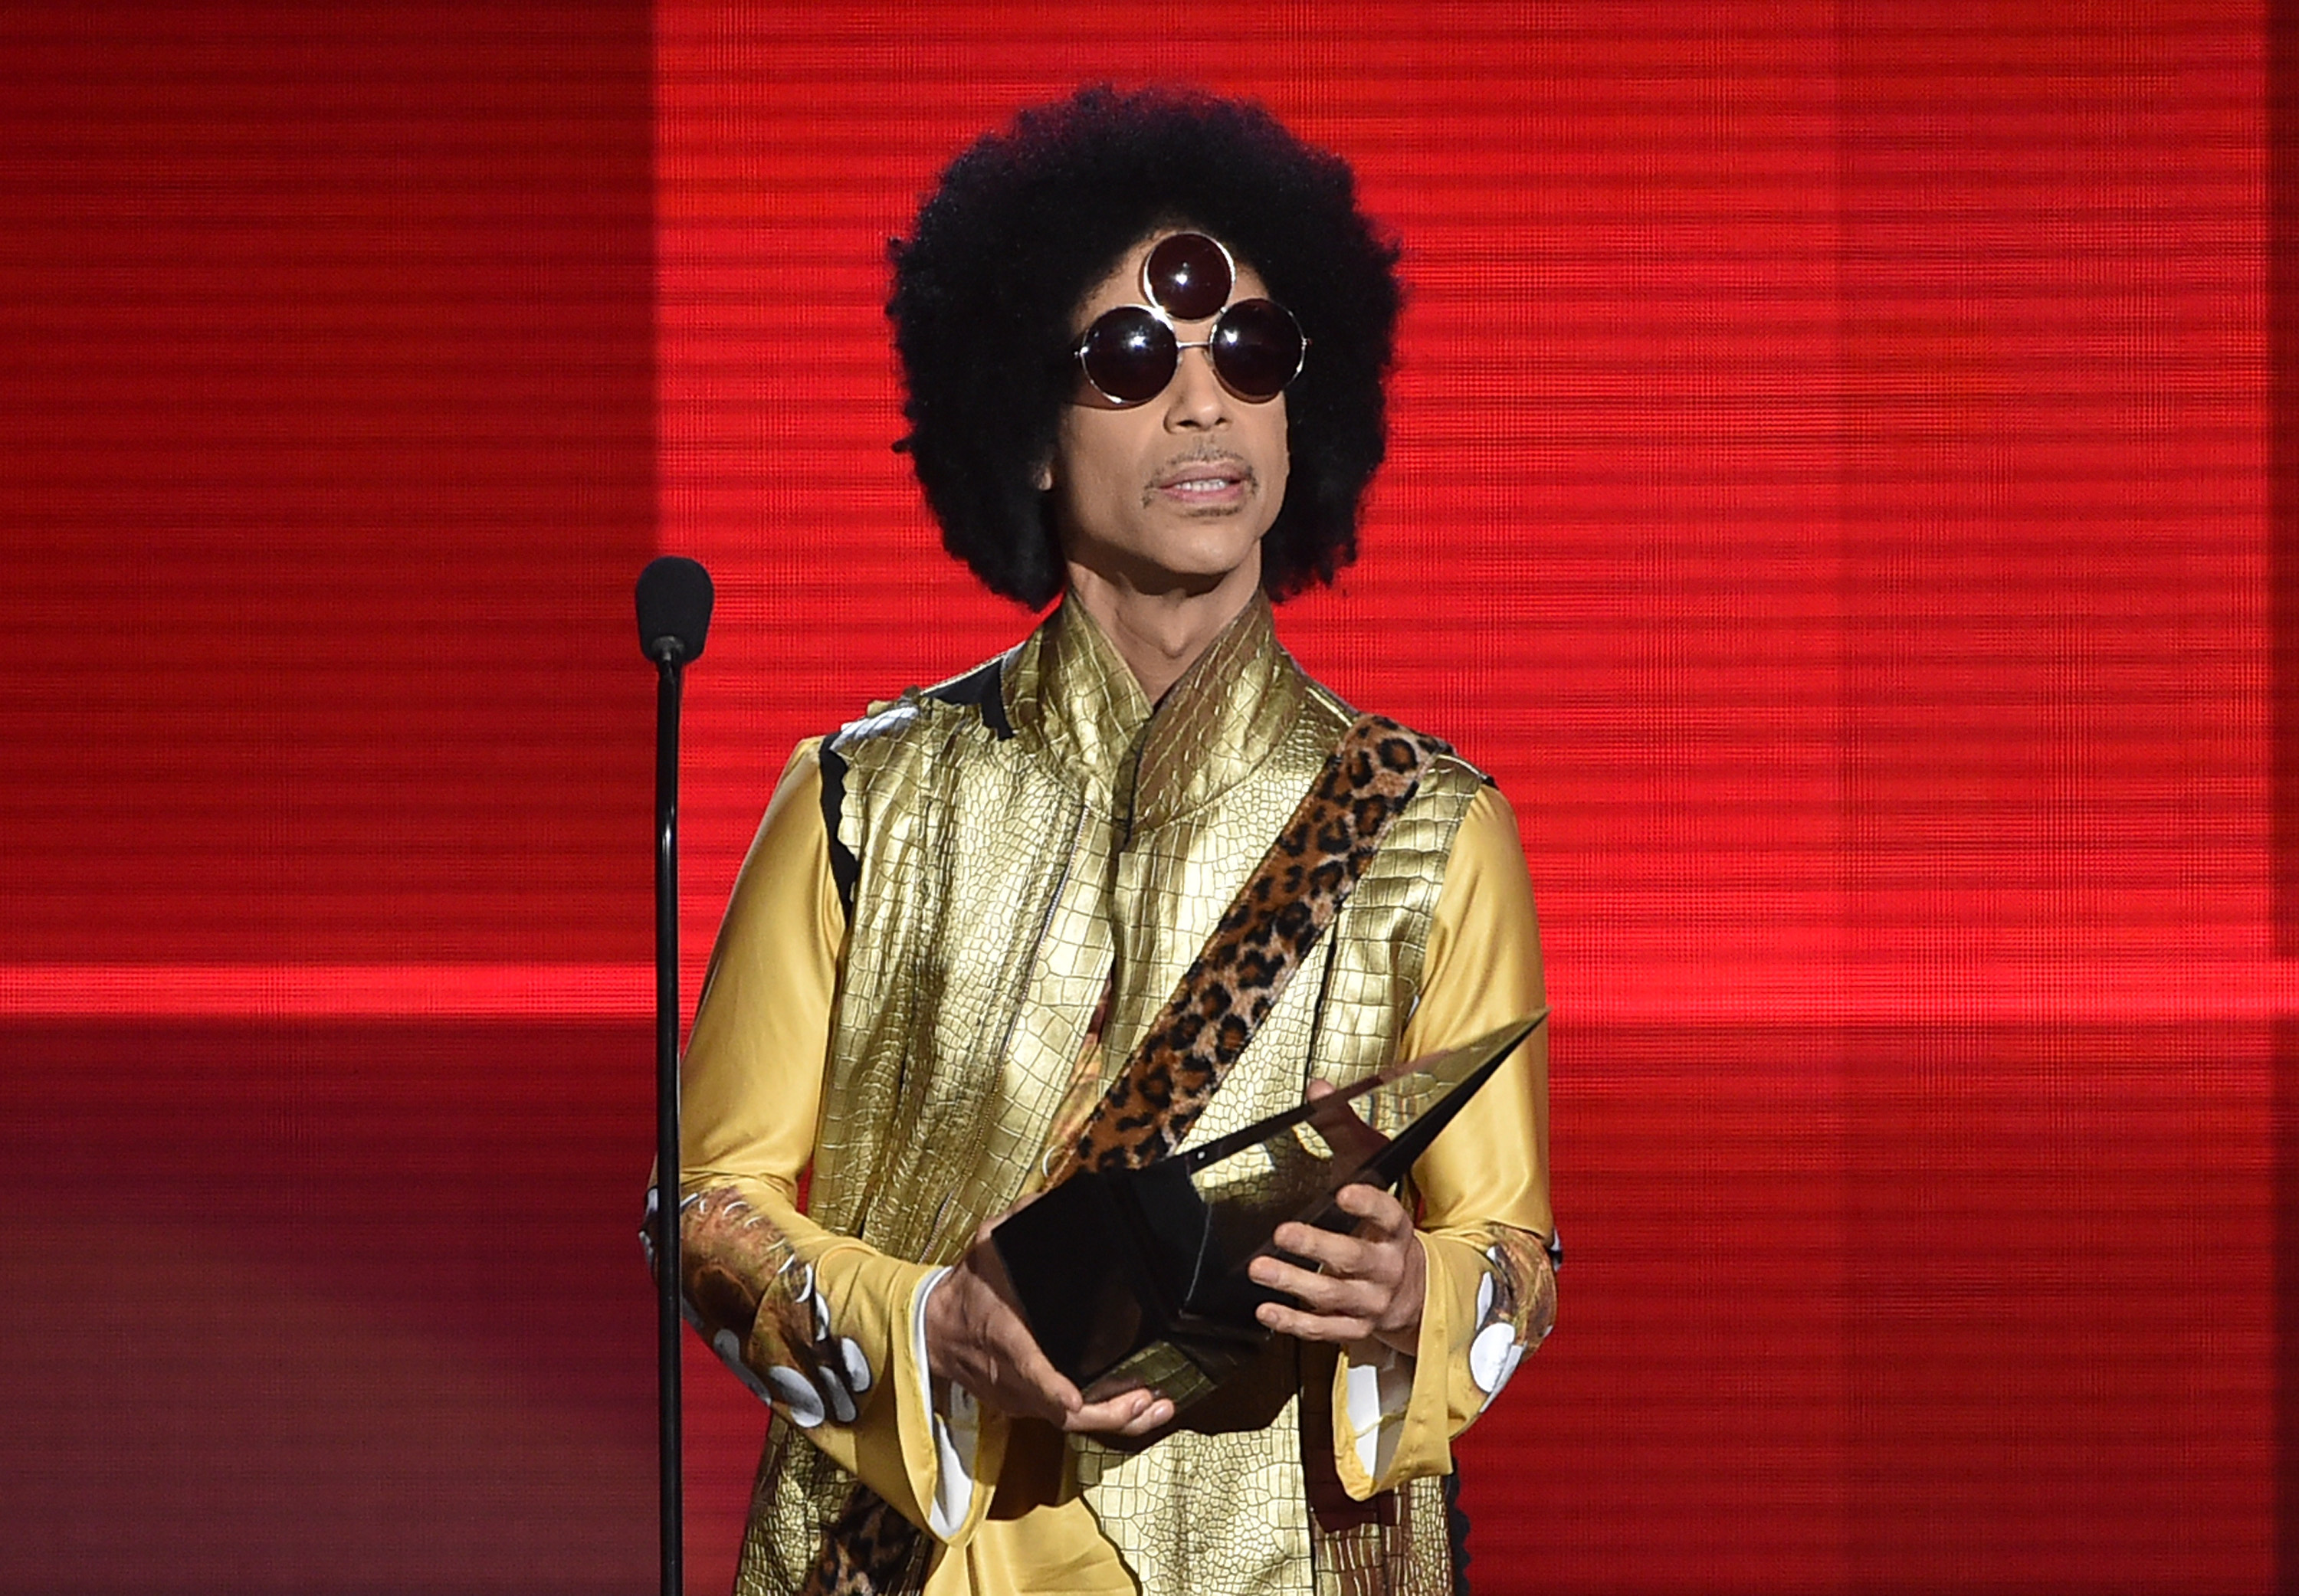 Prince Surprise-Releases New LP 'Hit N Run: Phase Two'